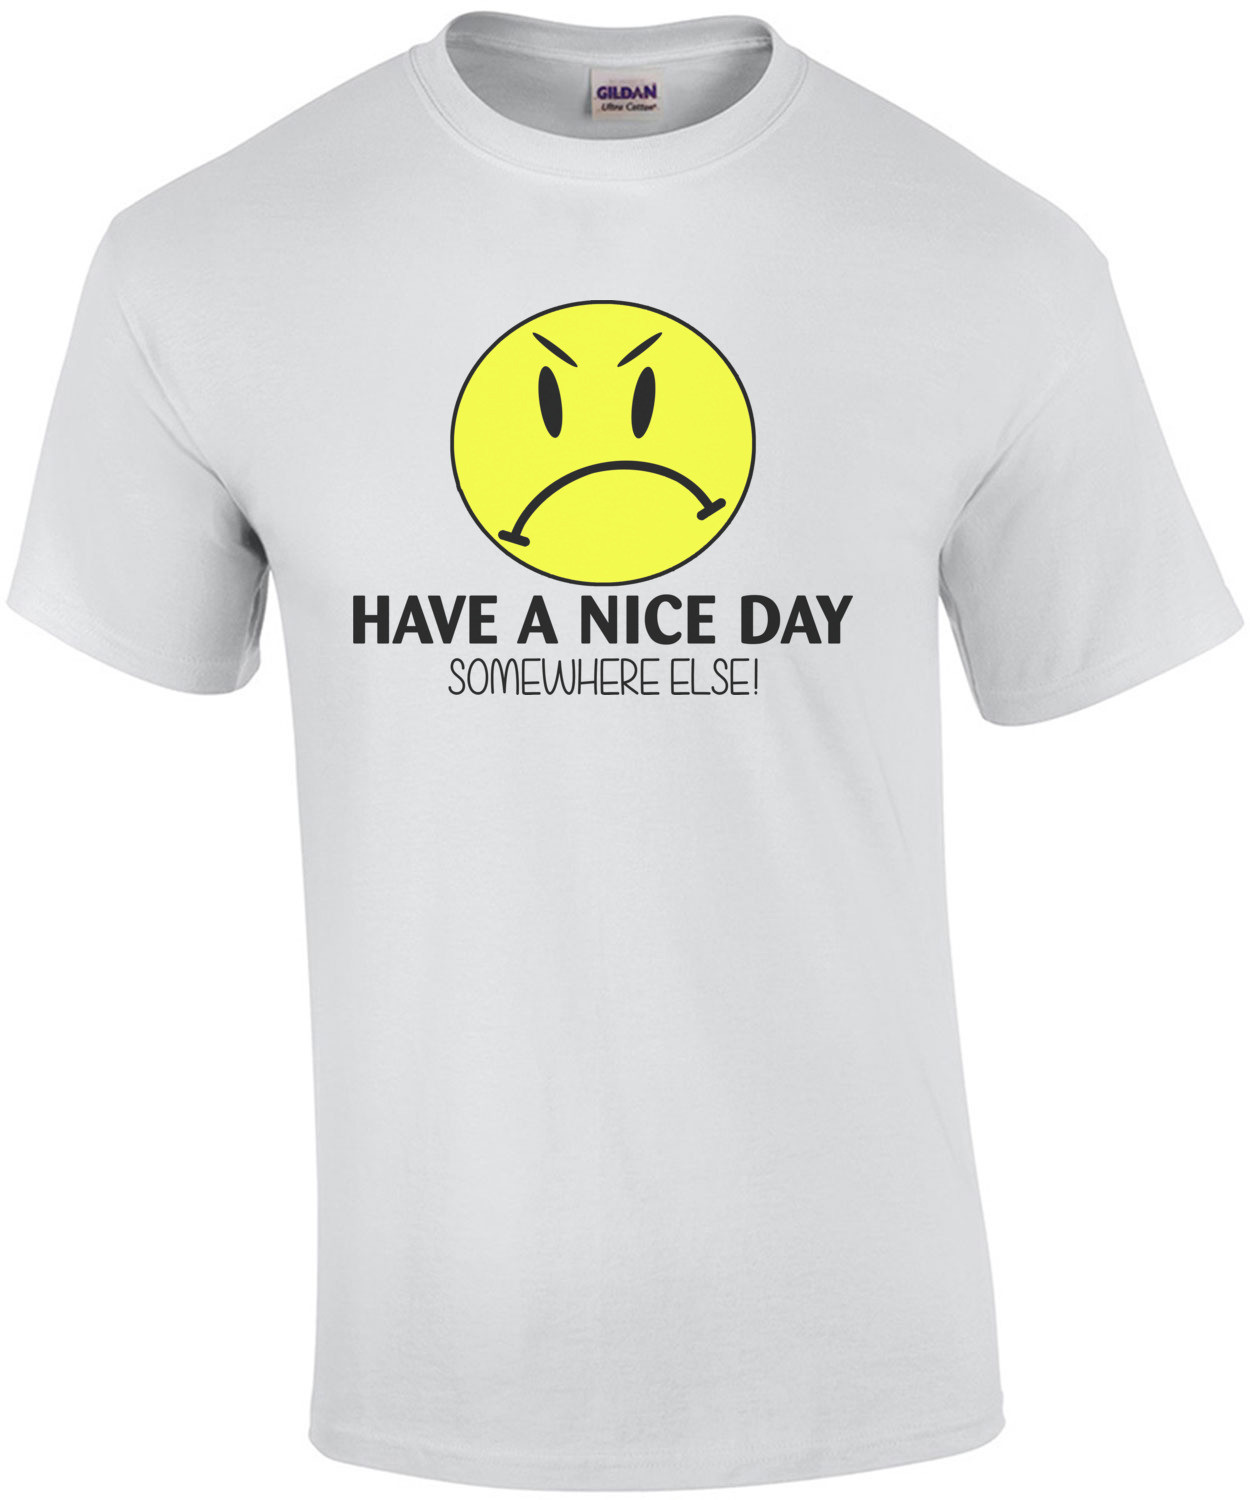 Have A Nice Day Somewhere Else T-Shirt